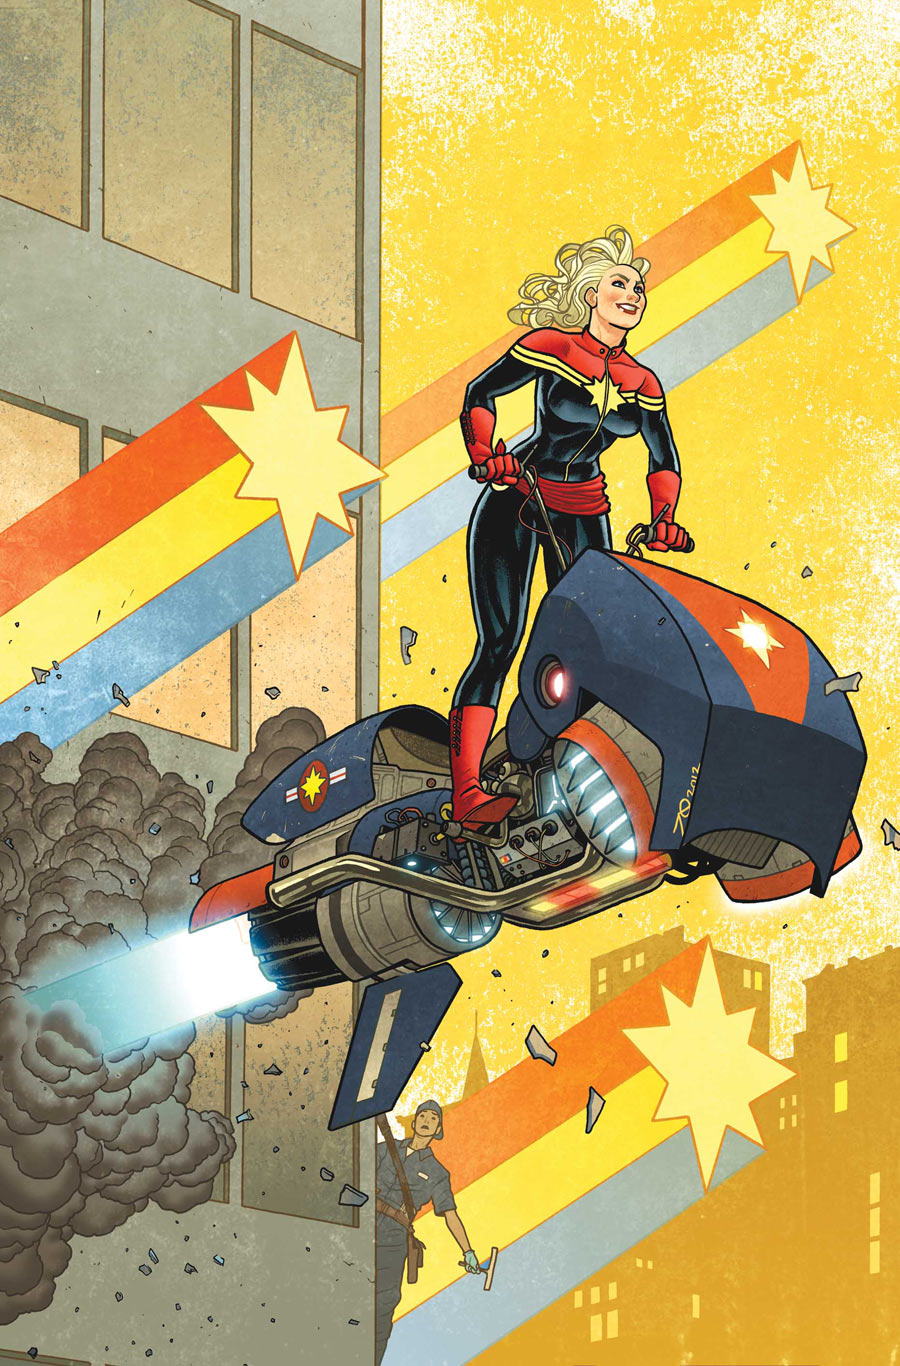 Captain Marvel #12 (Marvel) - Artist: Joe Quinones